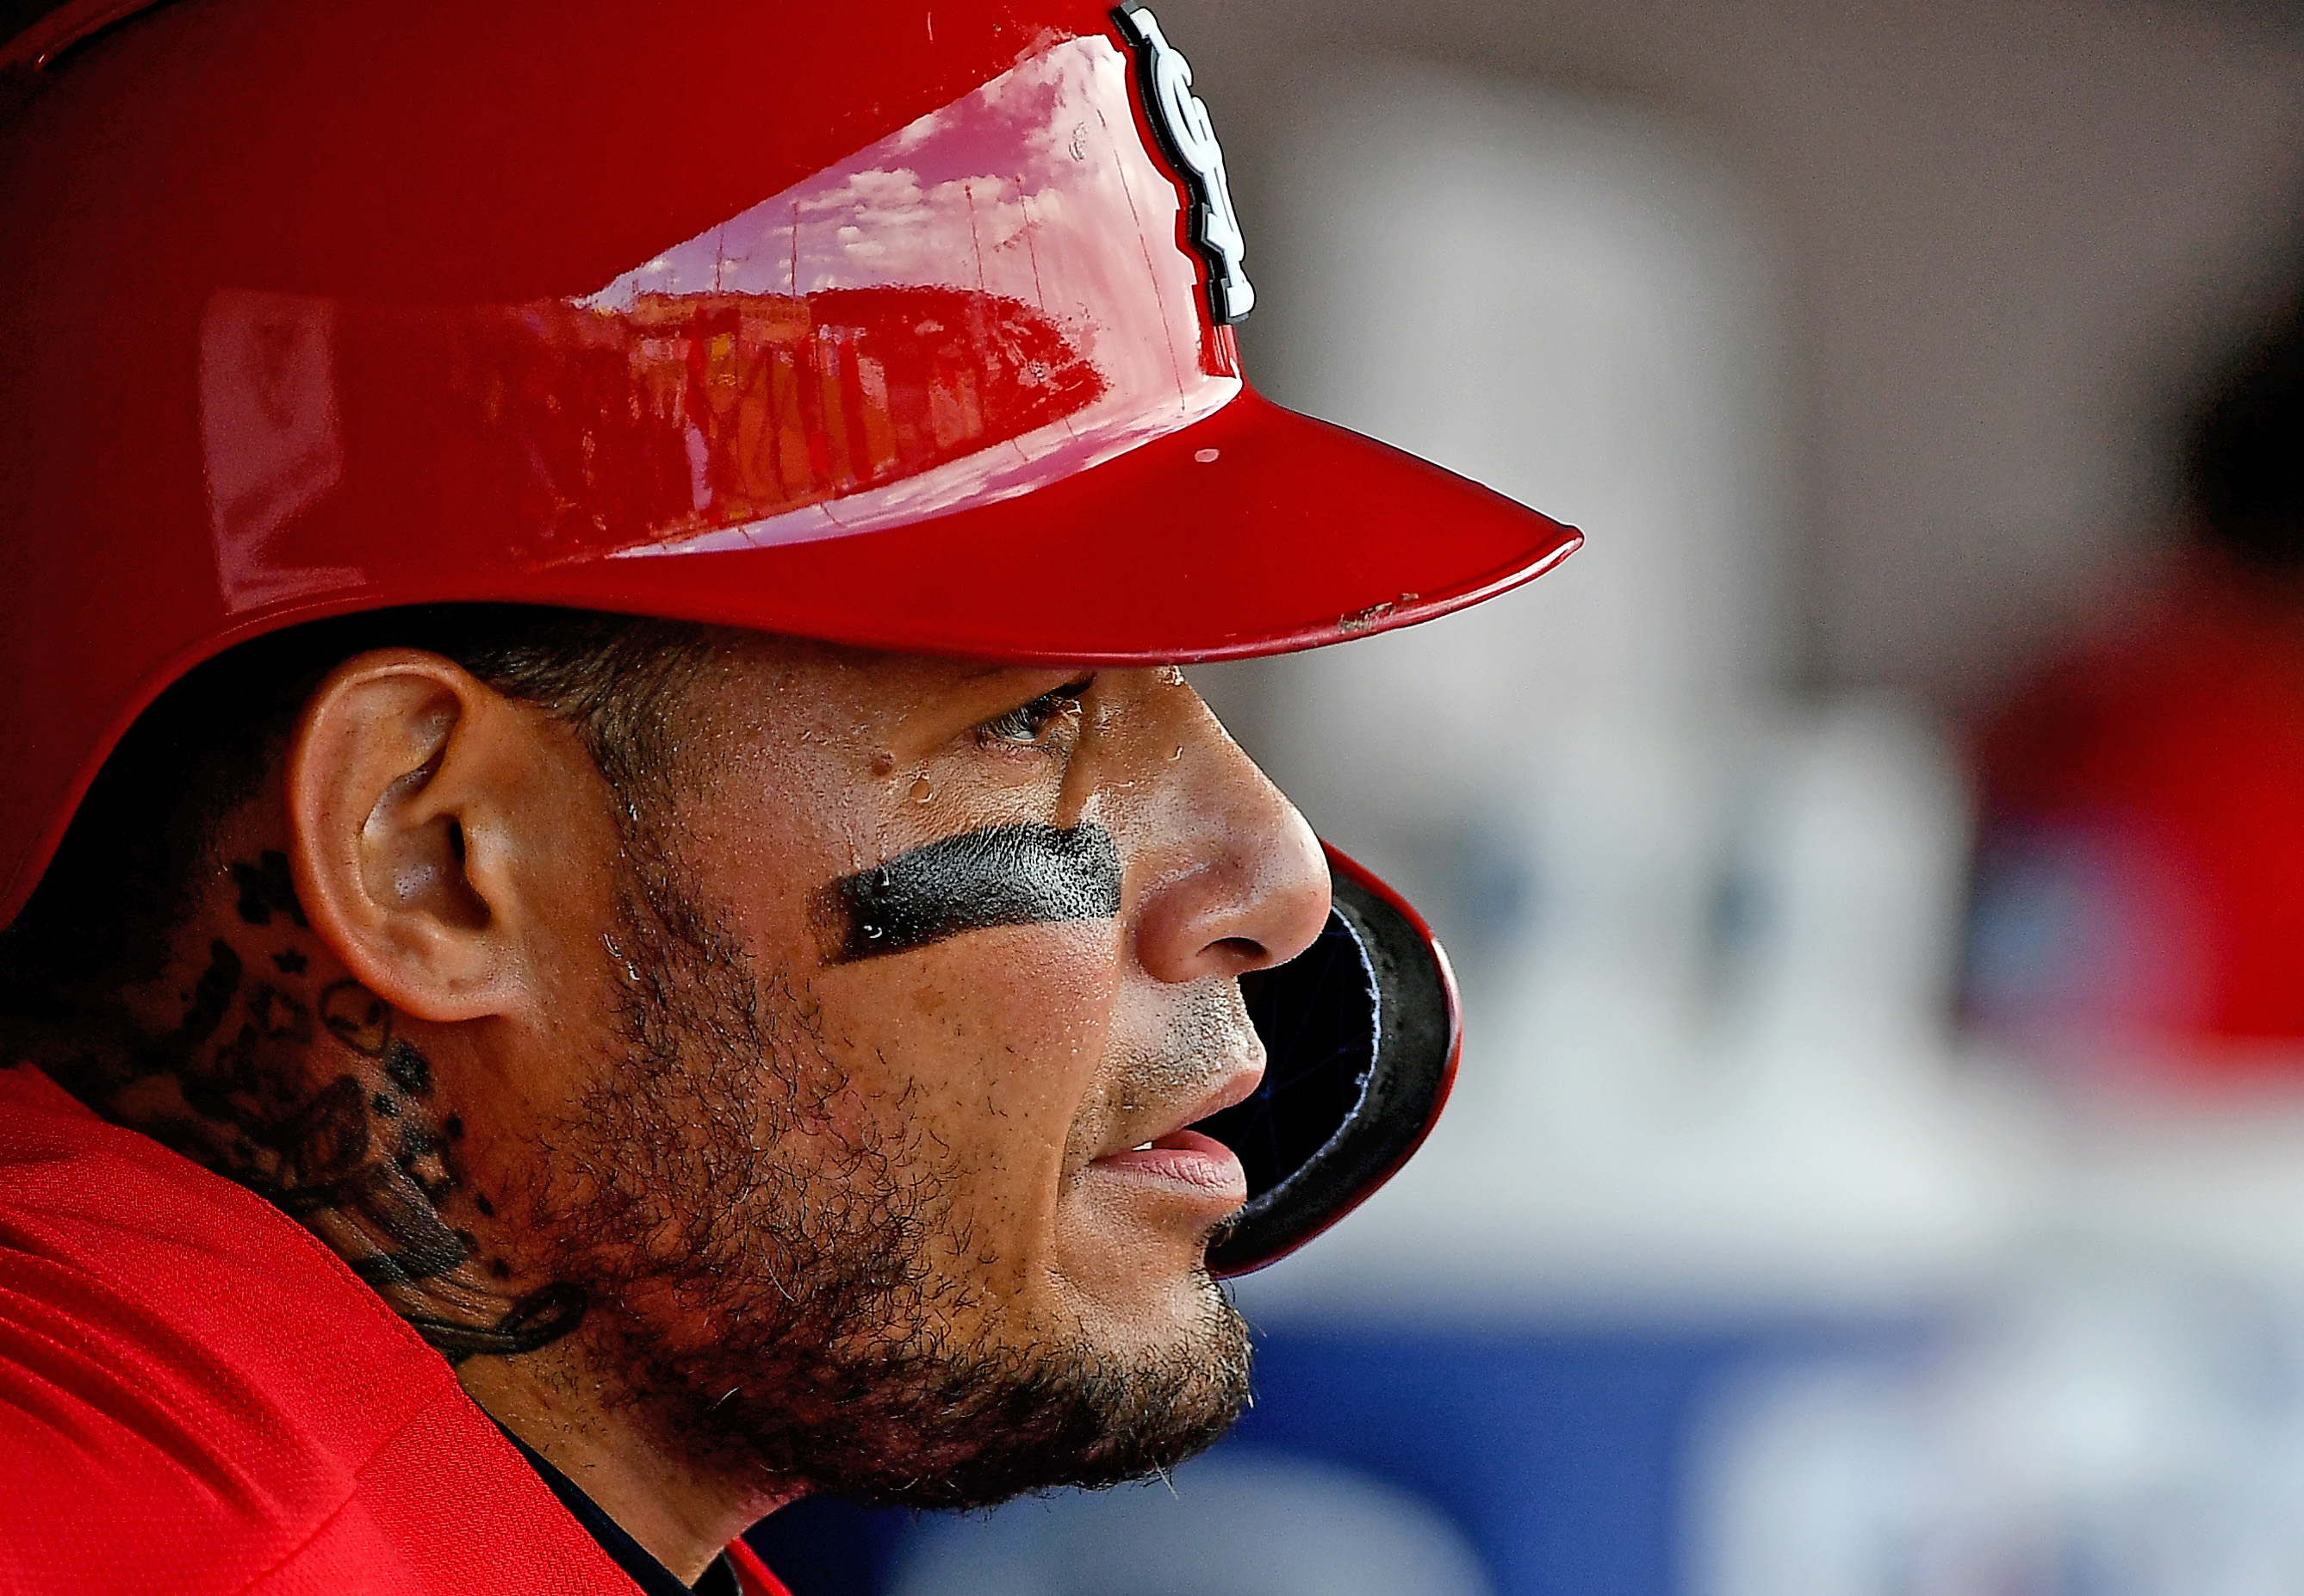 Carp returns to lineup, Molina 'within a 3-week range' to return from